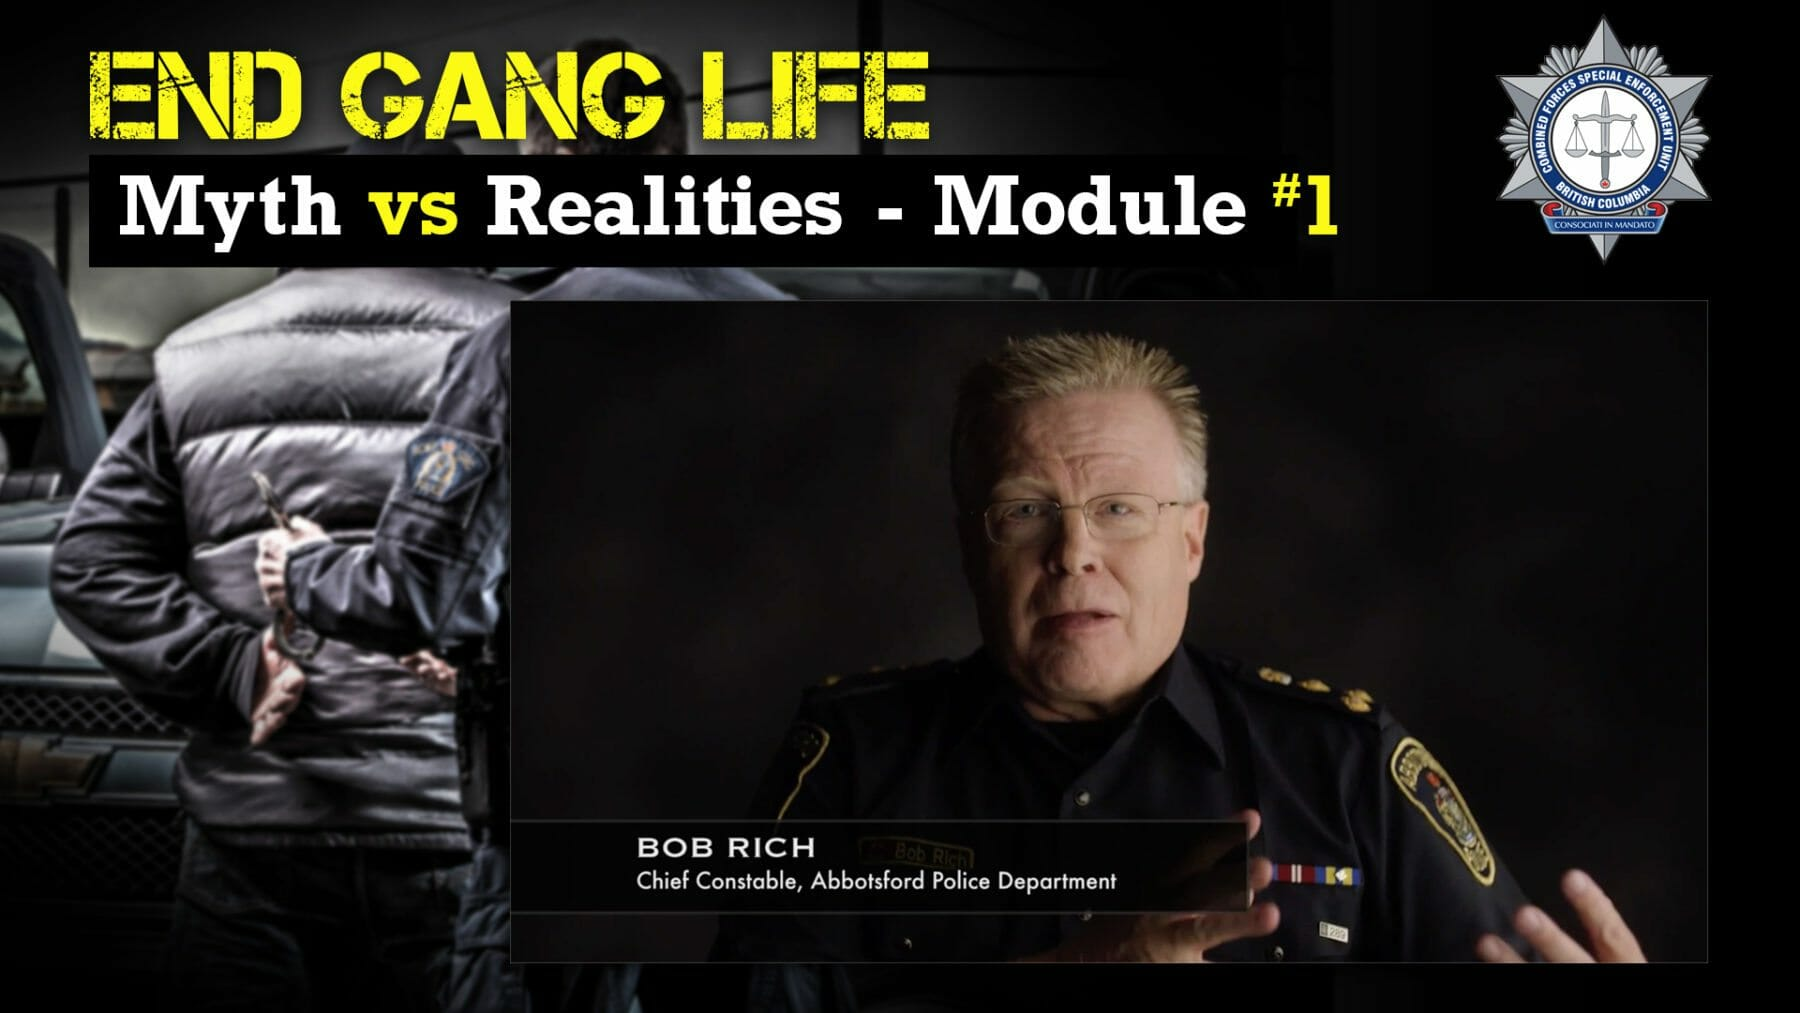 End Gang Life – Myths & Realities Video Modules